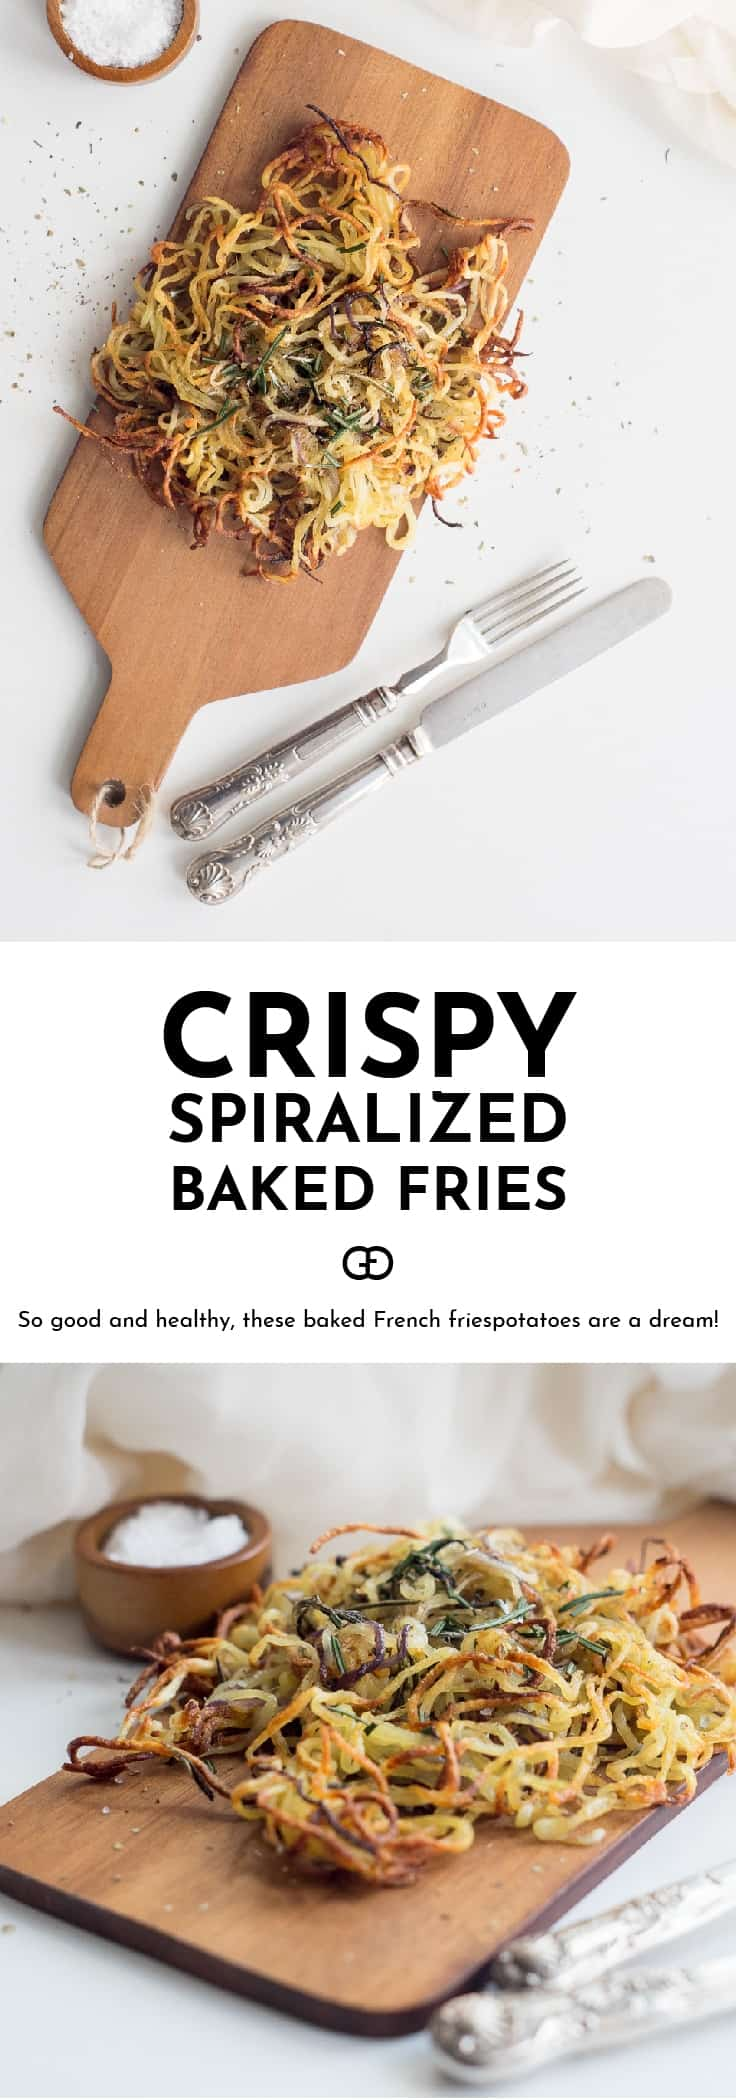 baked potatoes or french fries essay